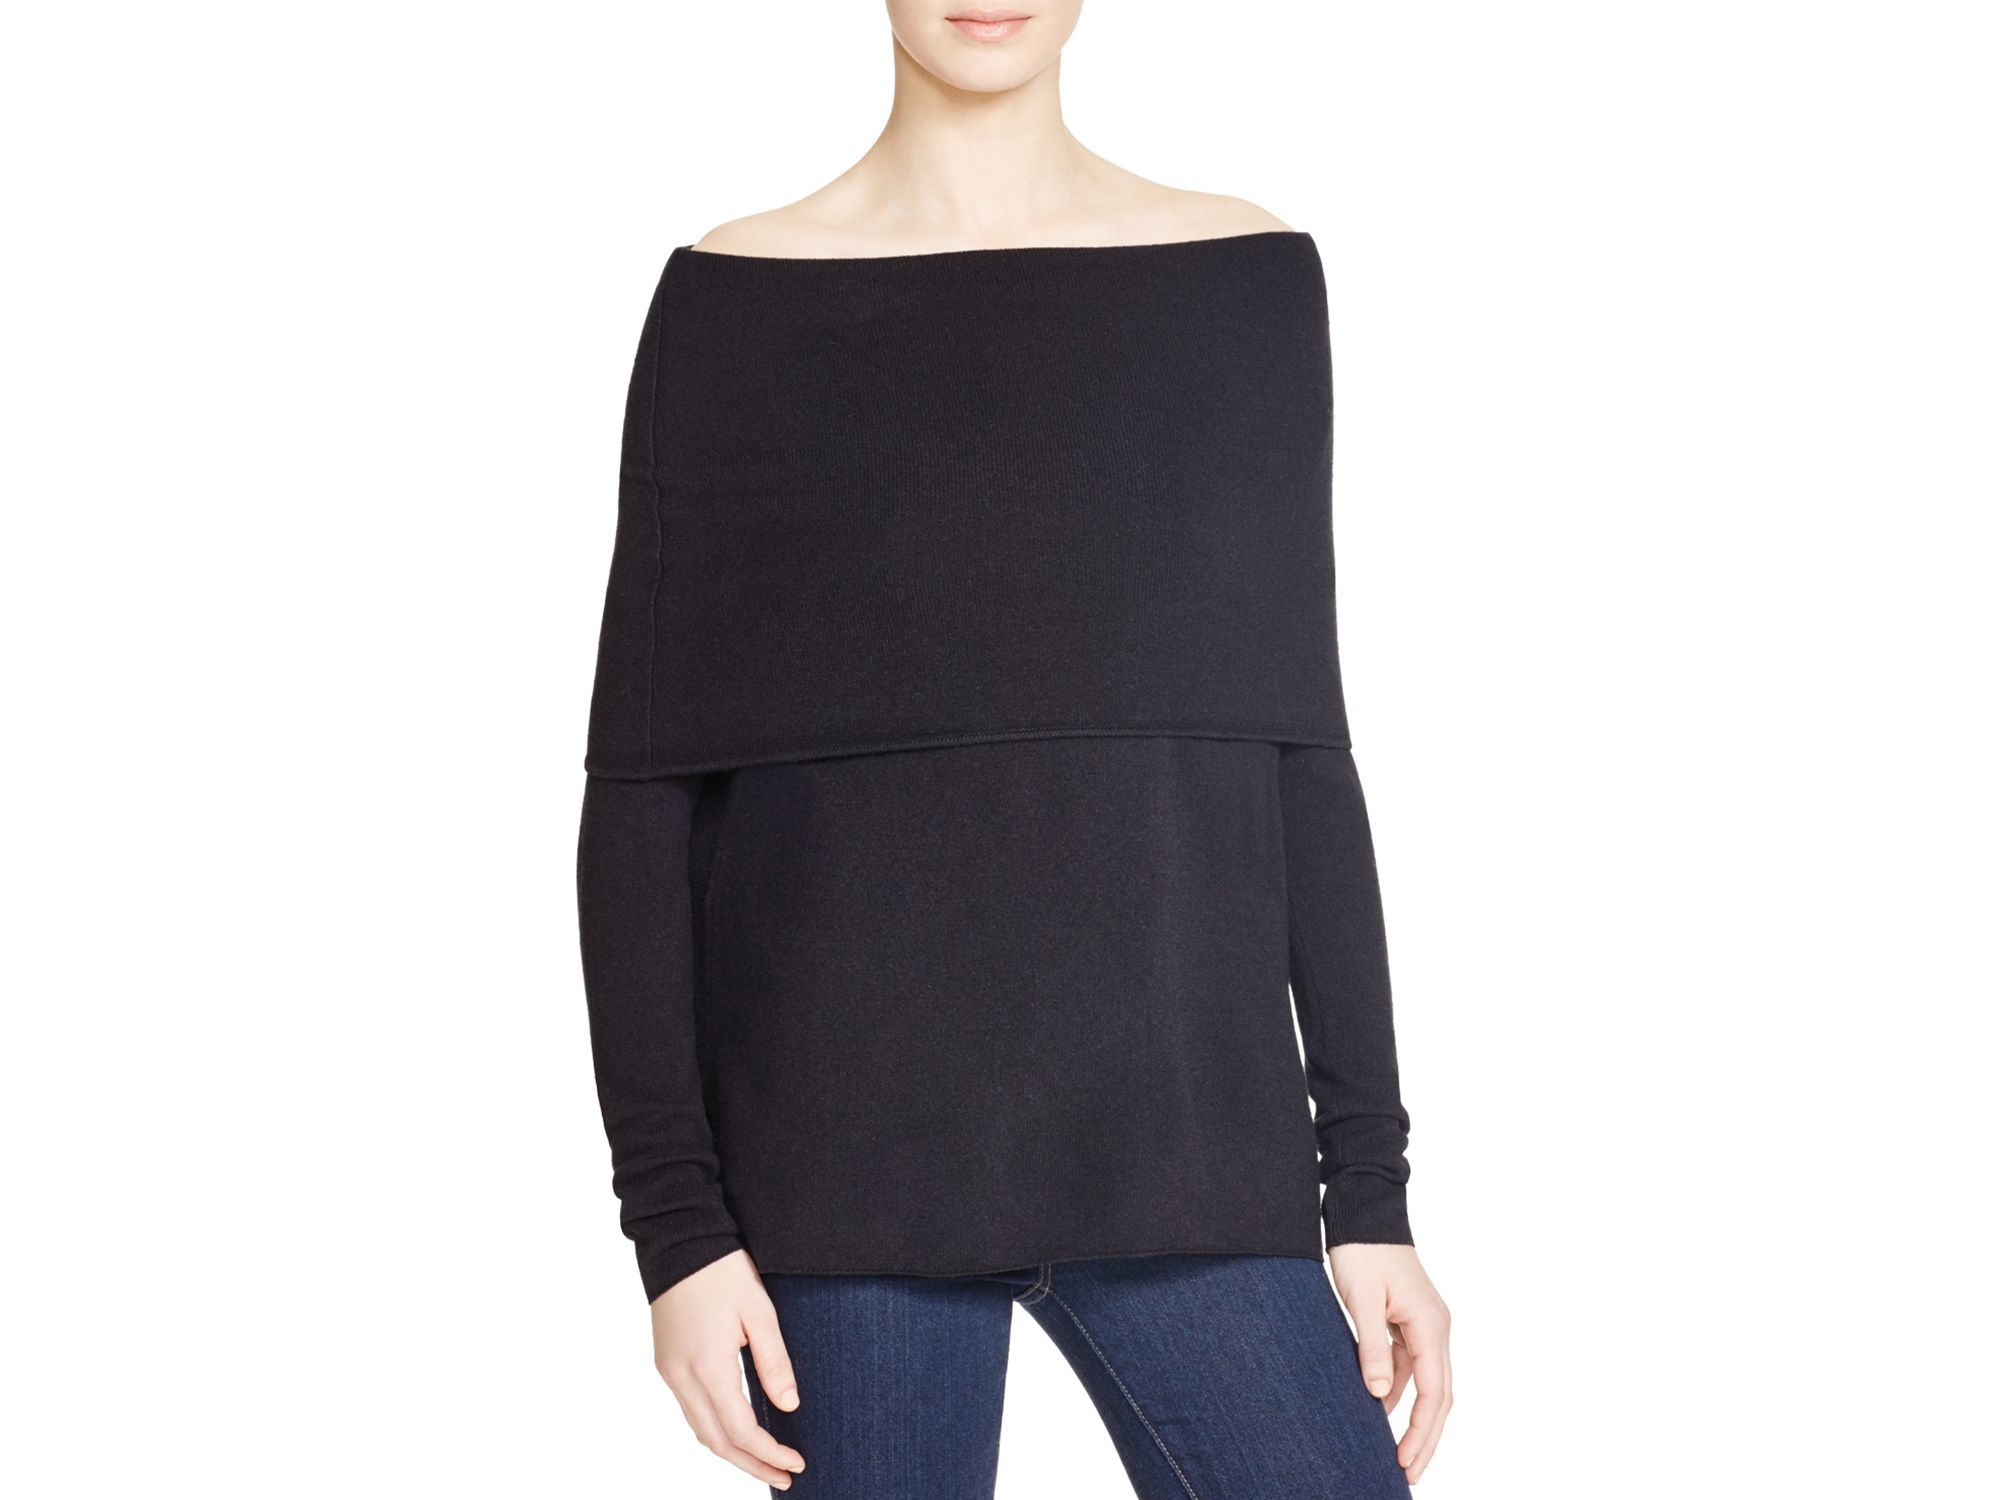 Vince Off-the-shoulder Cashmere Sweater in Black | Lyst